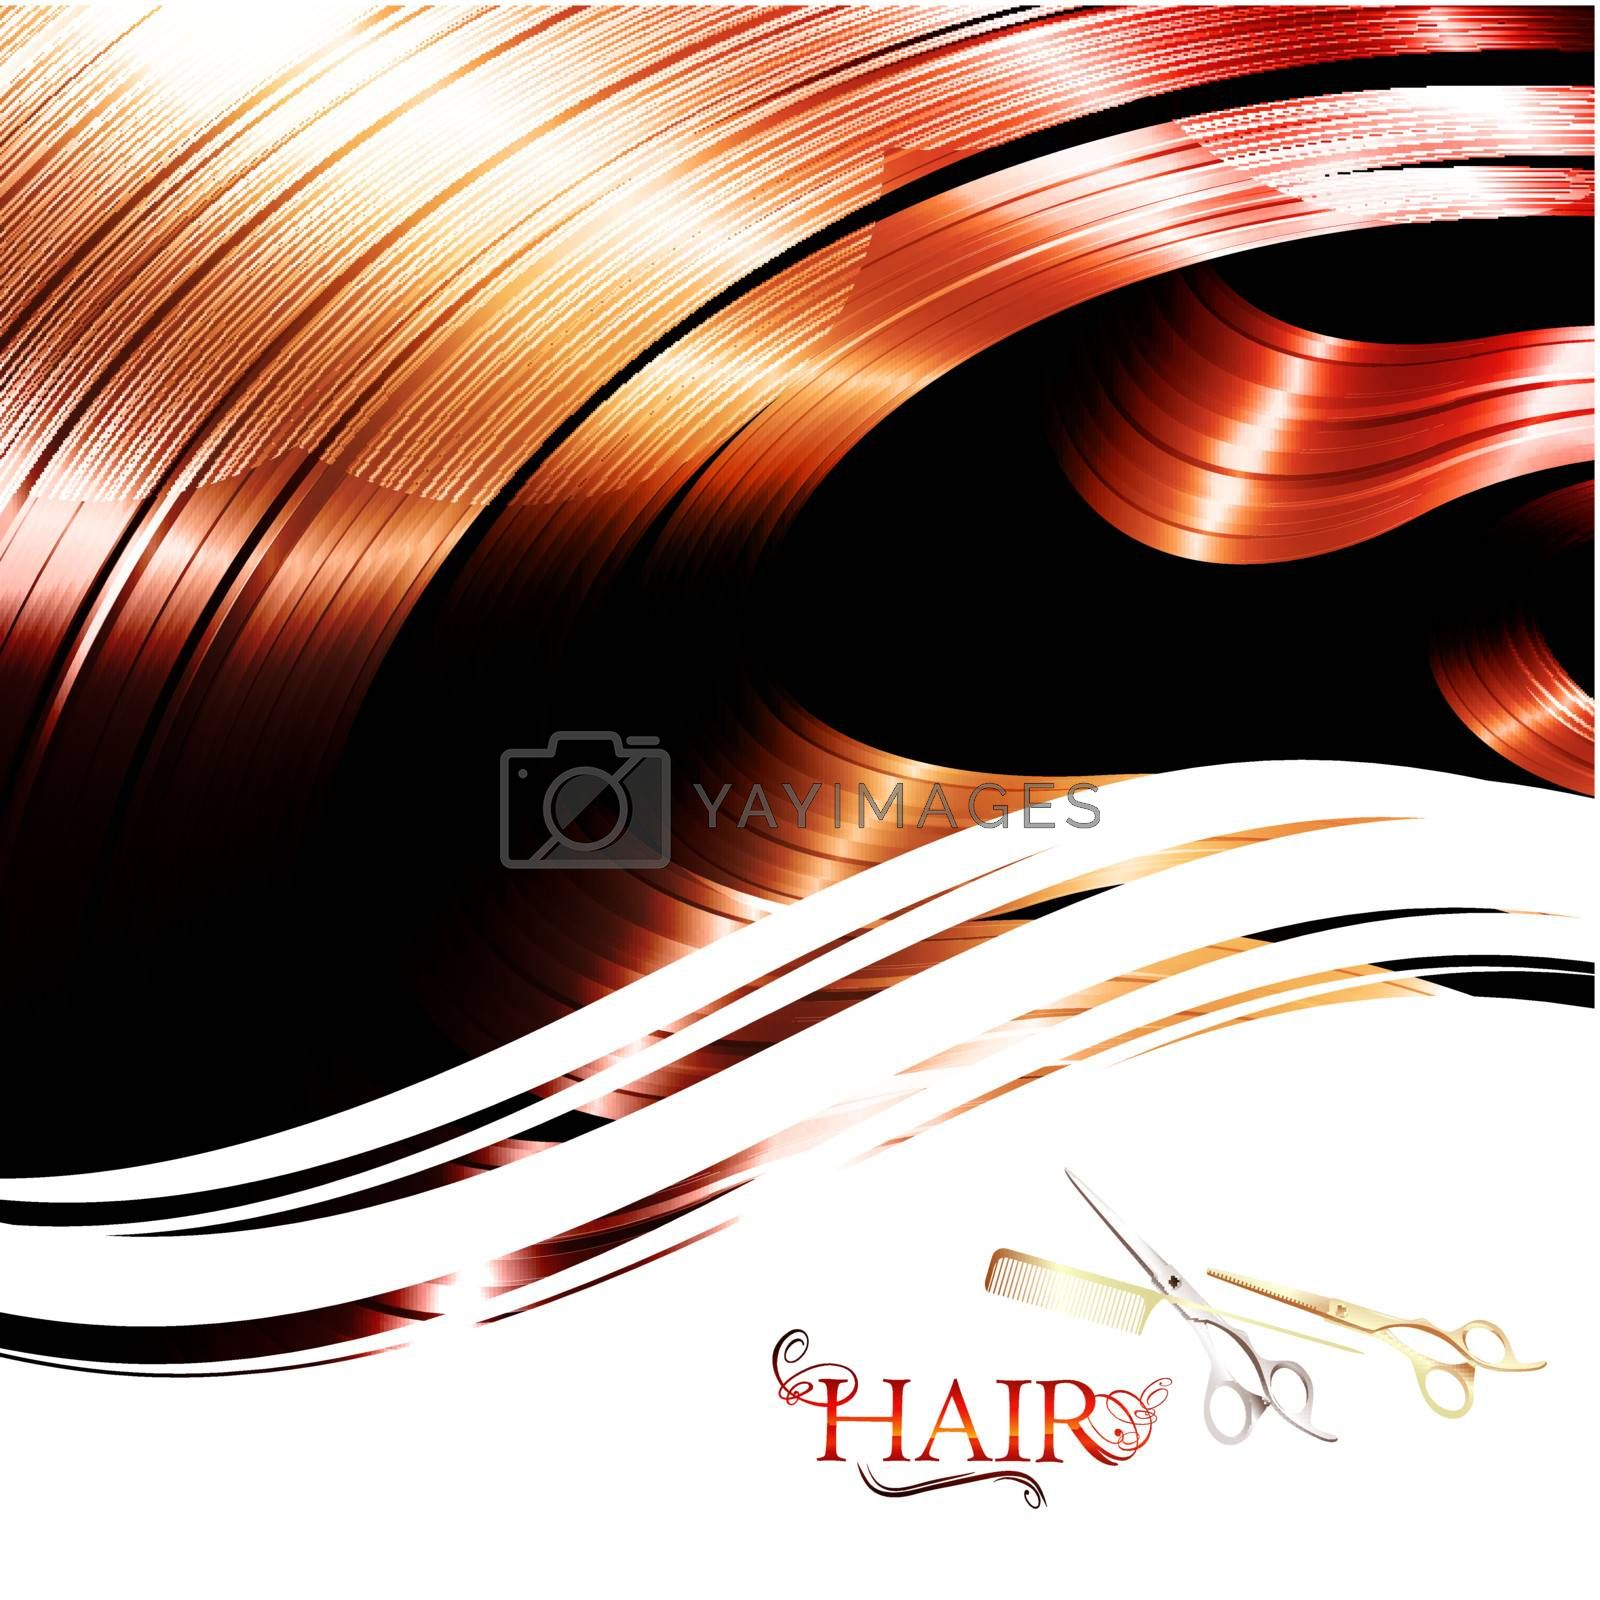 hair wavy frame with cutting scissors and metal pin tail comb